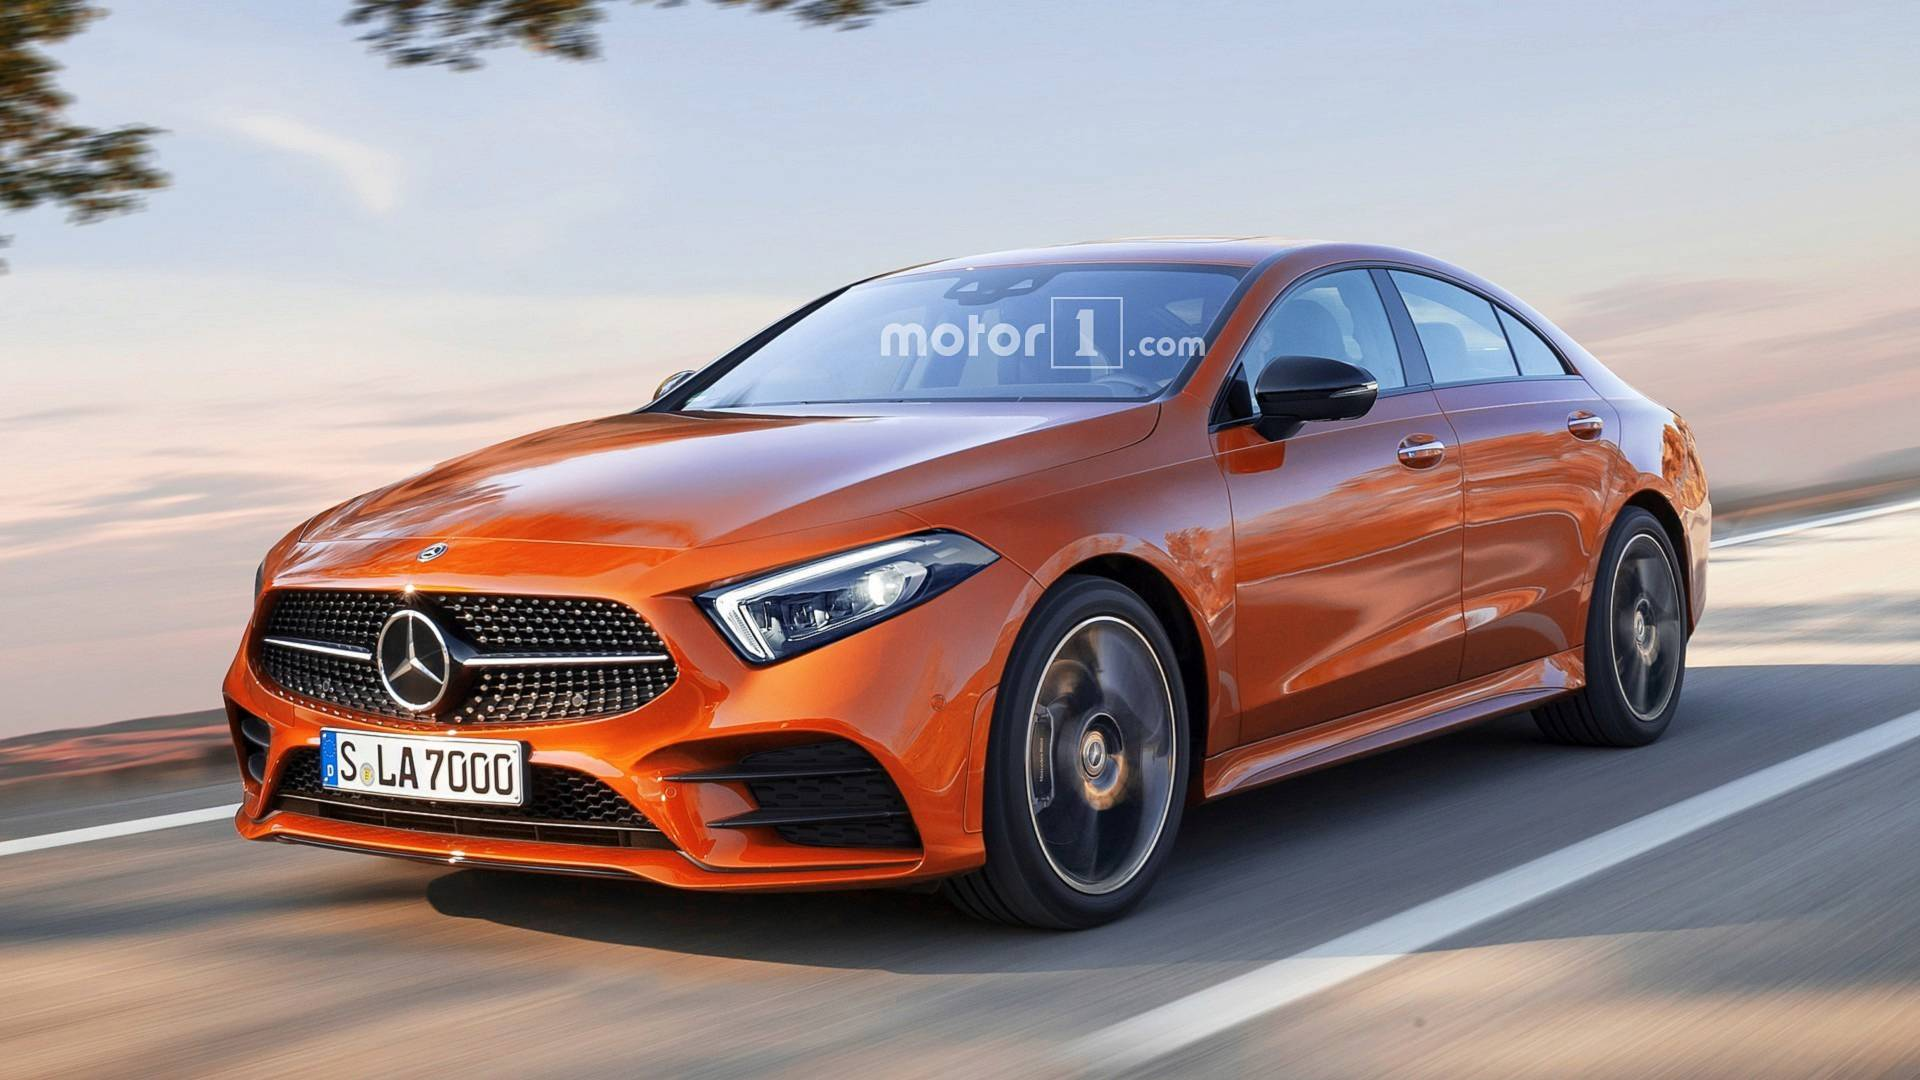 2020 Mercedes CLA Render Looks Like A Sleeker A Class Sedan 1920x1080